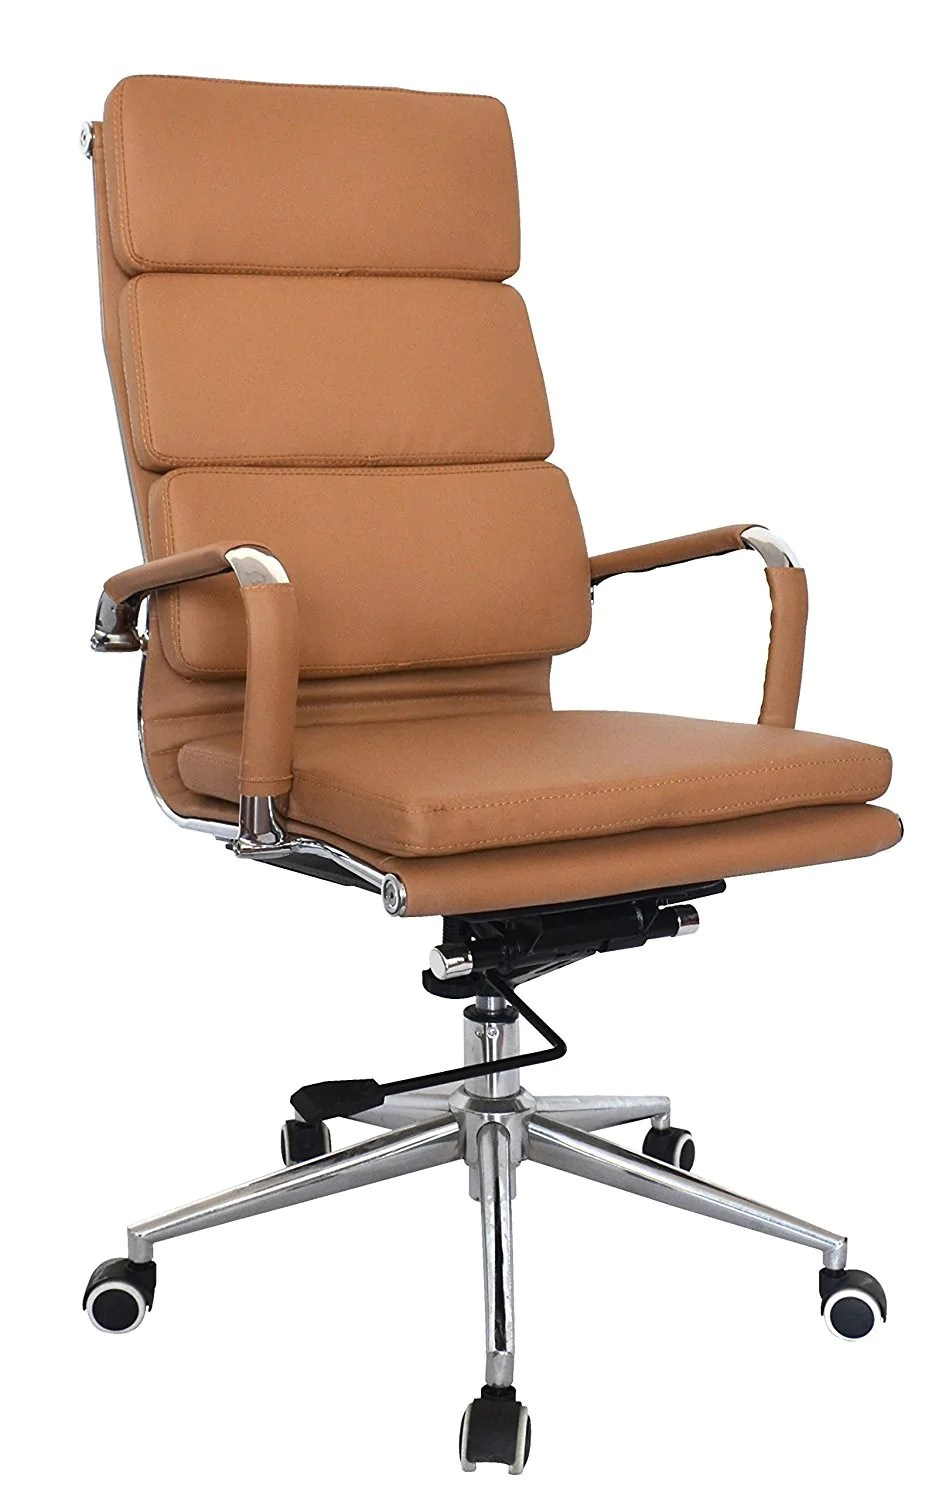 office desk chairs threshold patio camel vegan leather executive classic padded high back chair us elements